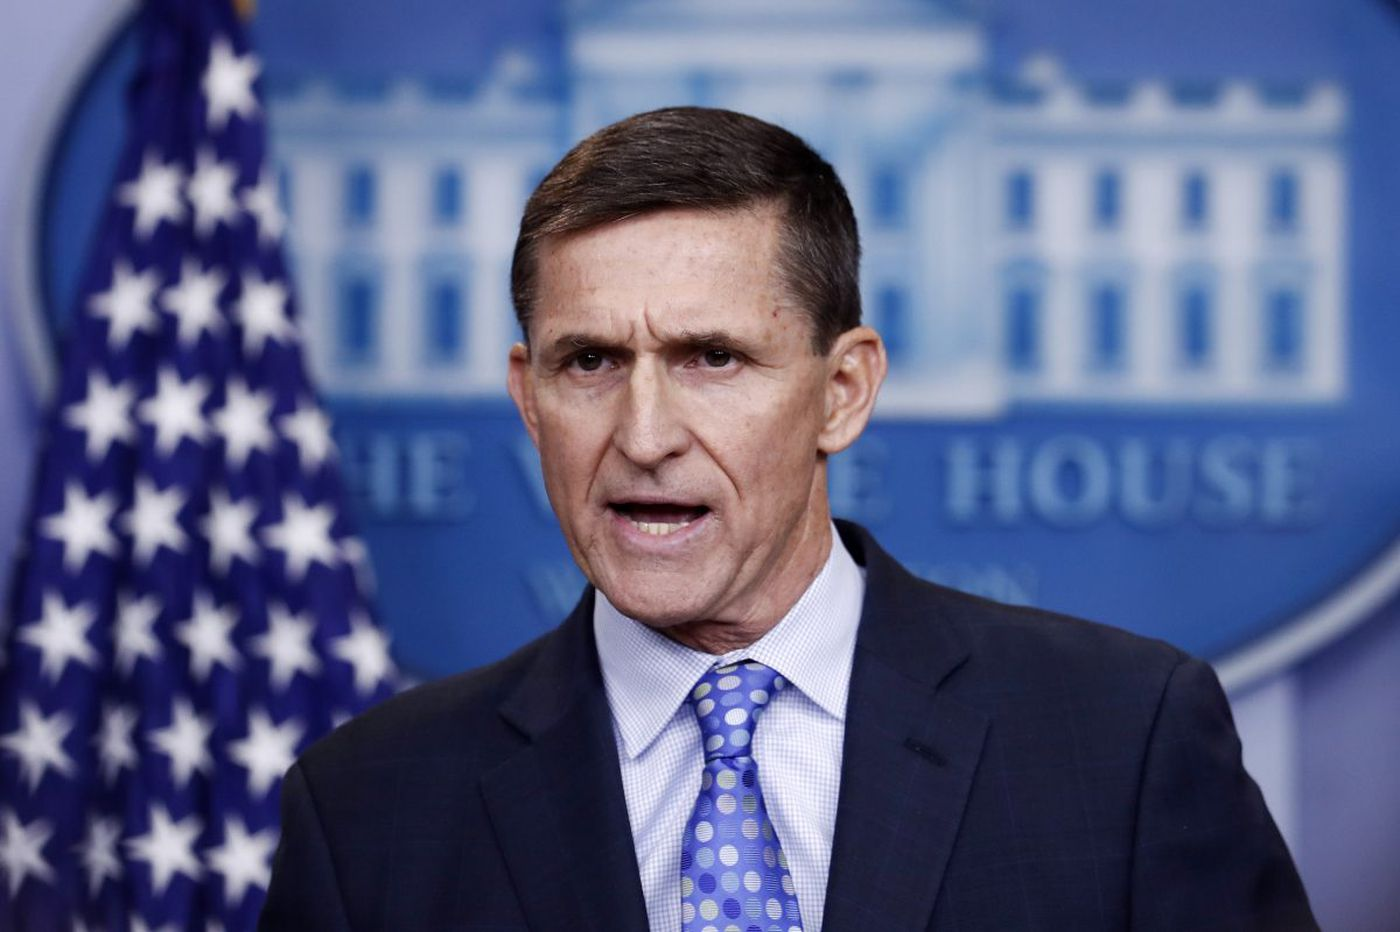 Flynn's lawyer shuts down contact with Trump's team, a sign he may be cooperating with probe